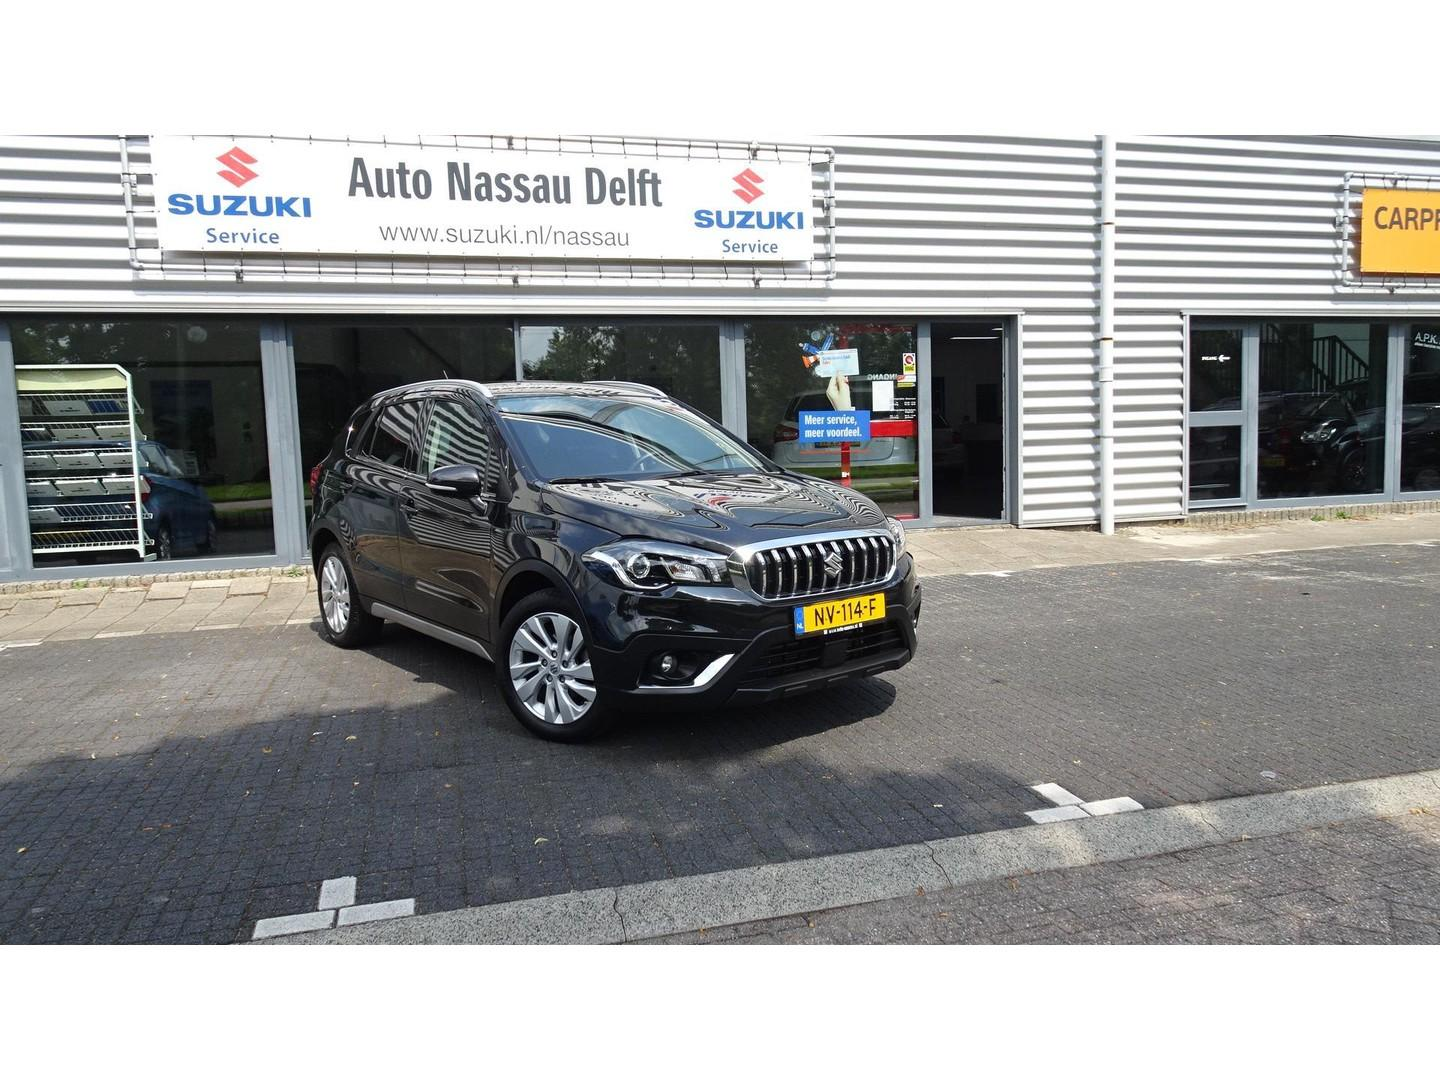 Suzuki S-cross 1.0 boosterjet exclusive navi airco